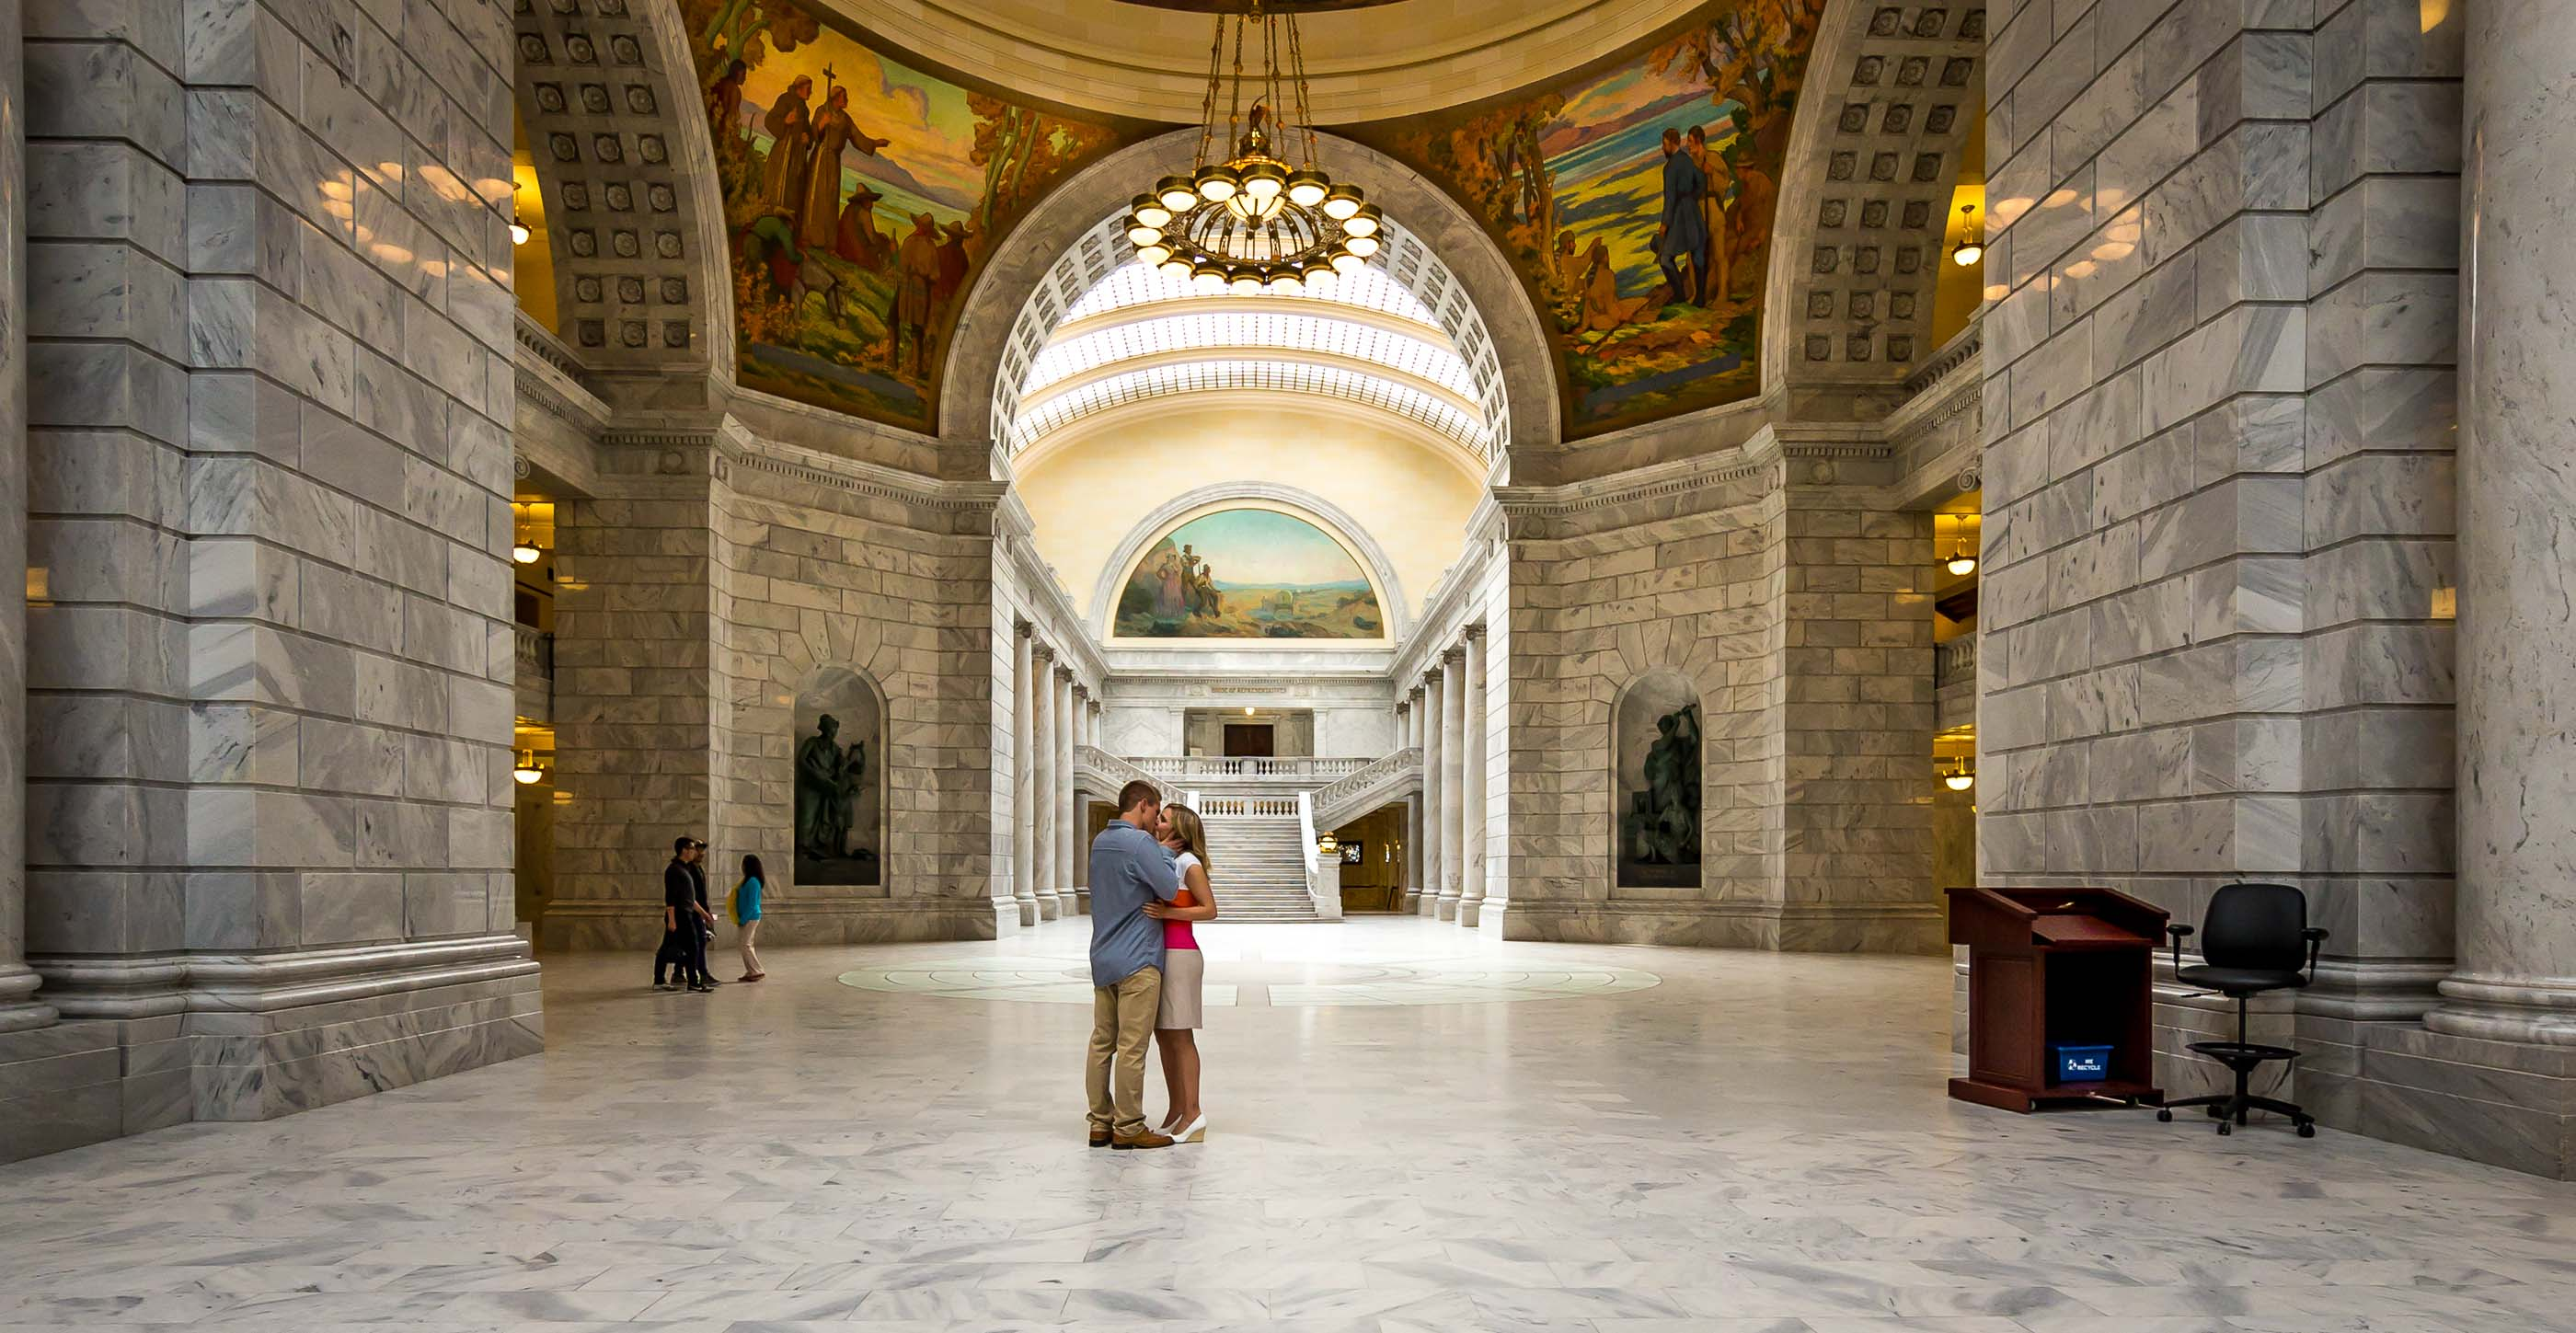 Zack Sarah Prince Engagement Cedar City on Capitol building floor